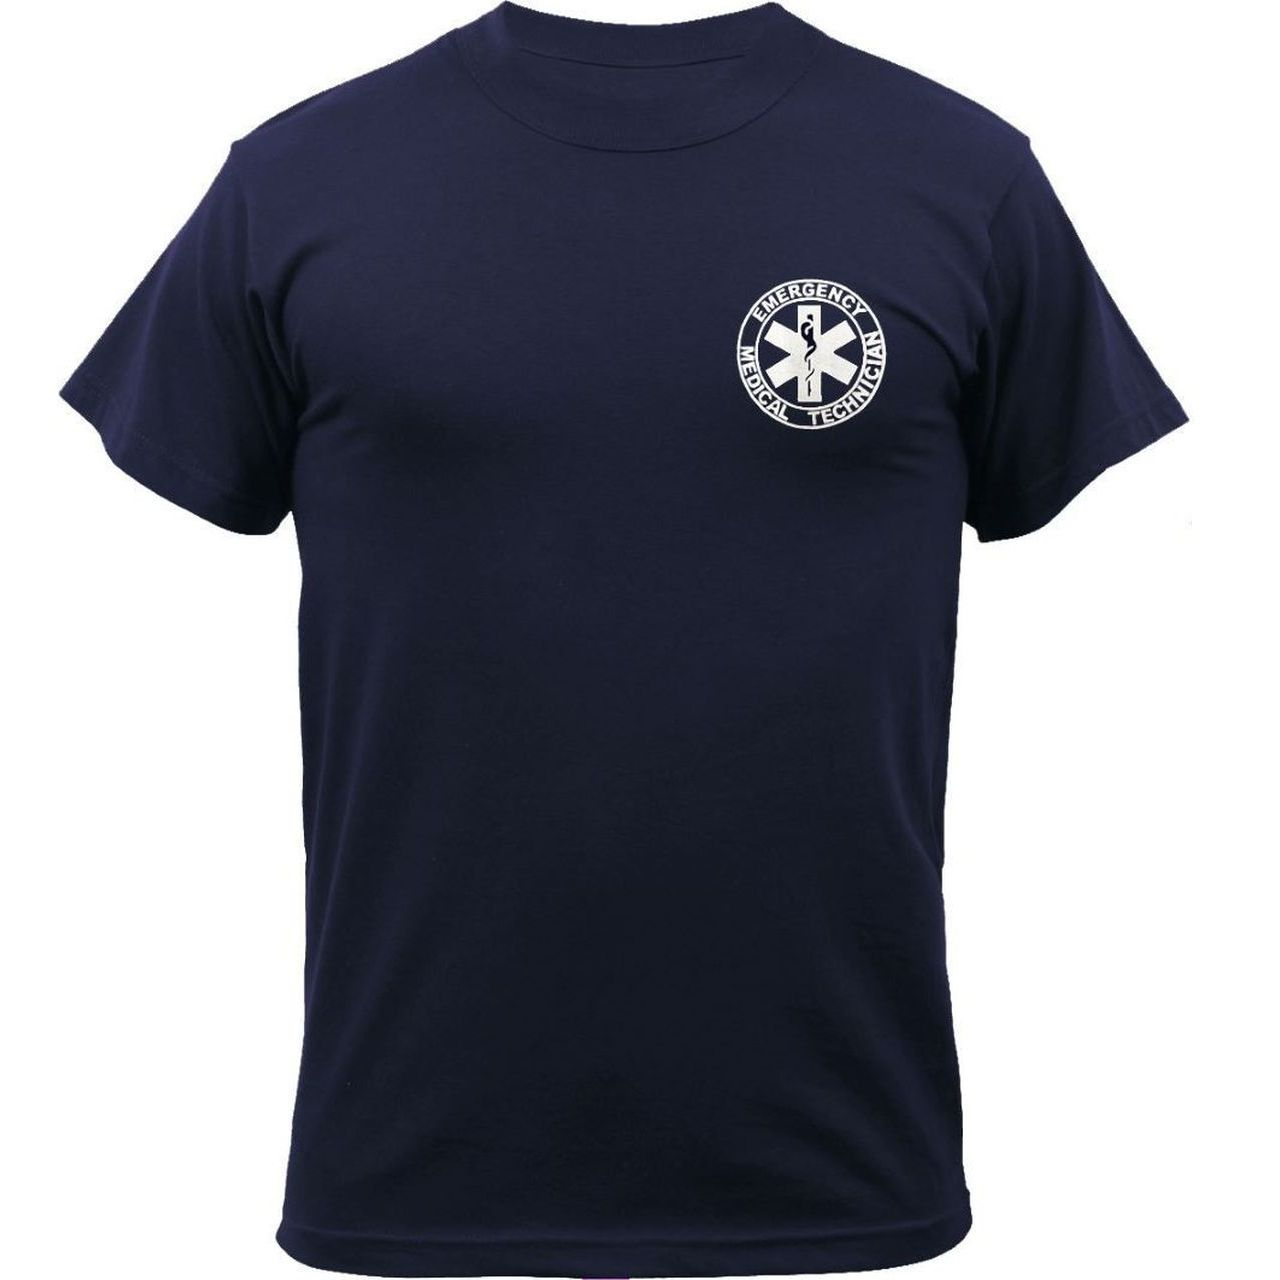 Kemp USA Navy EMT Shirt With Front And Back Logo - Large